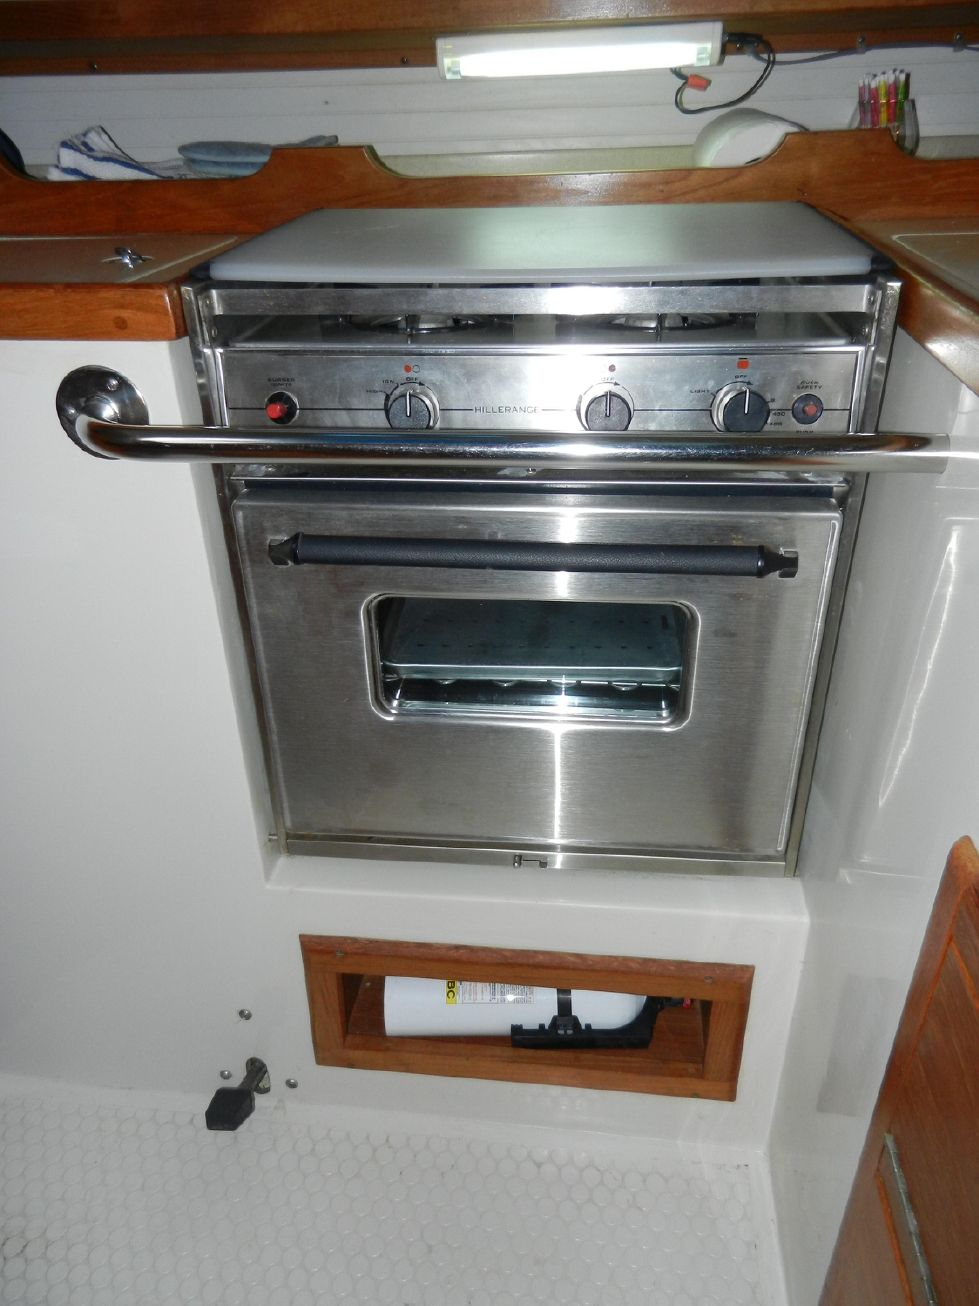 Propane Stove with oven